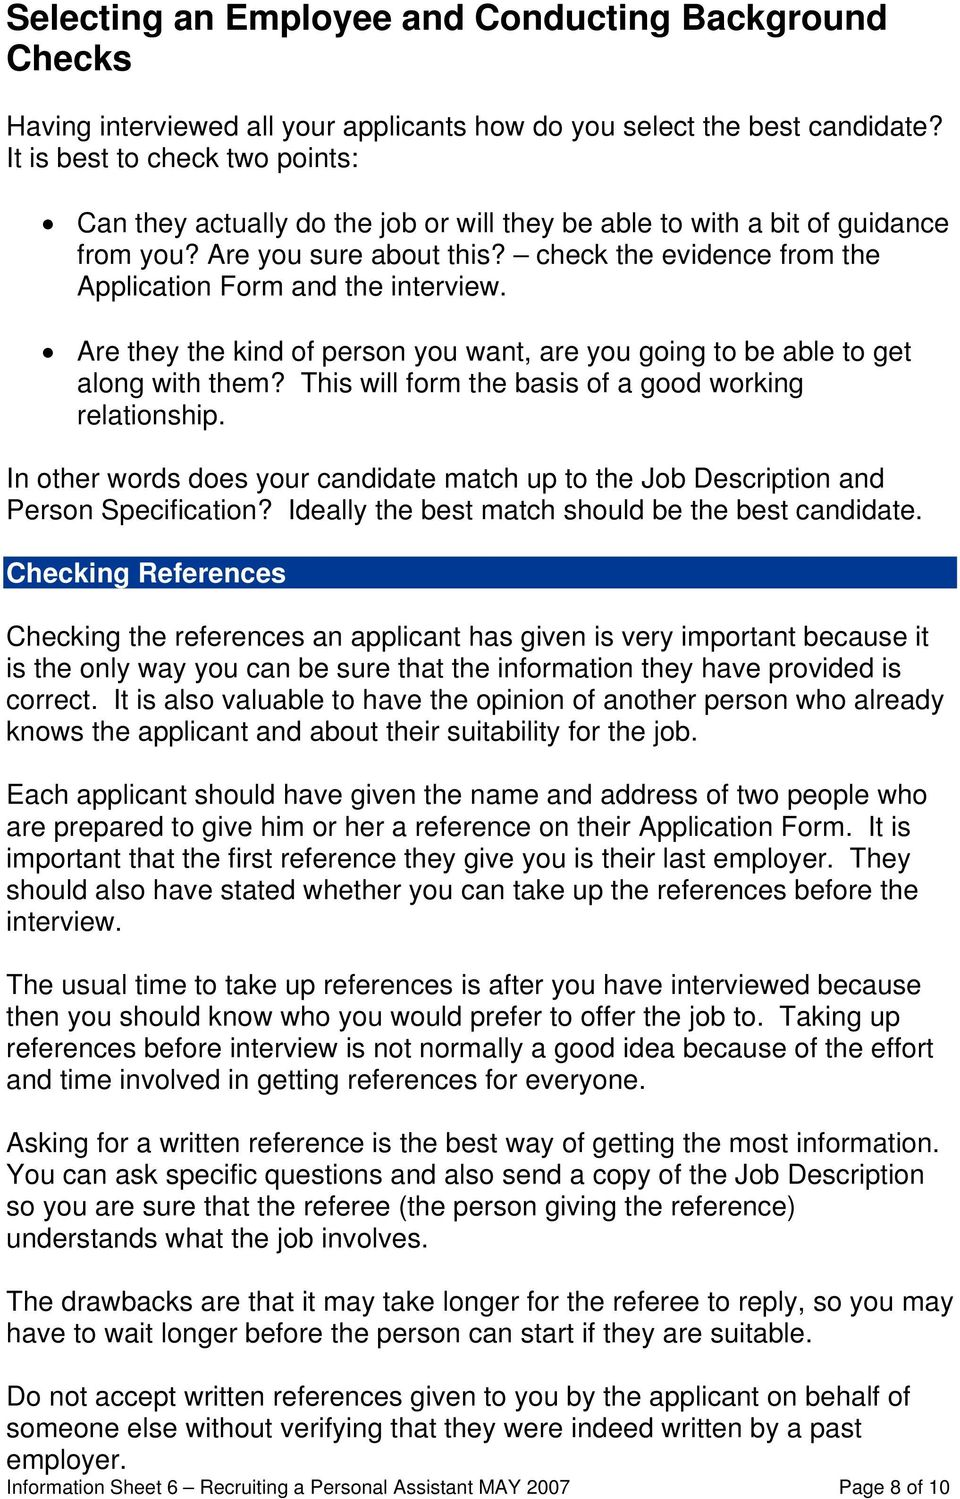 Information Sheet 6 Recruiting A Personal Assistant Pdf